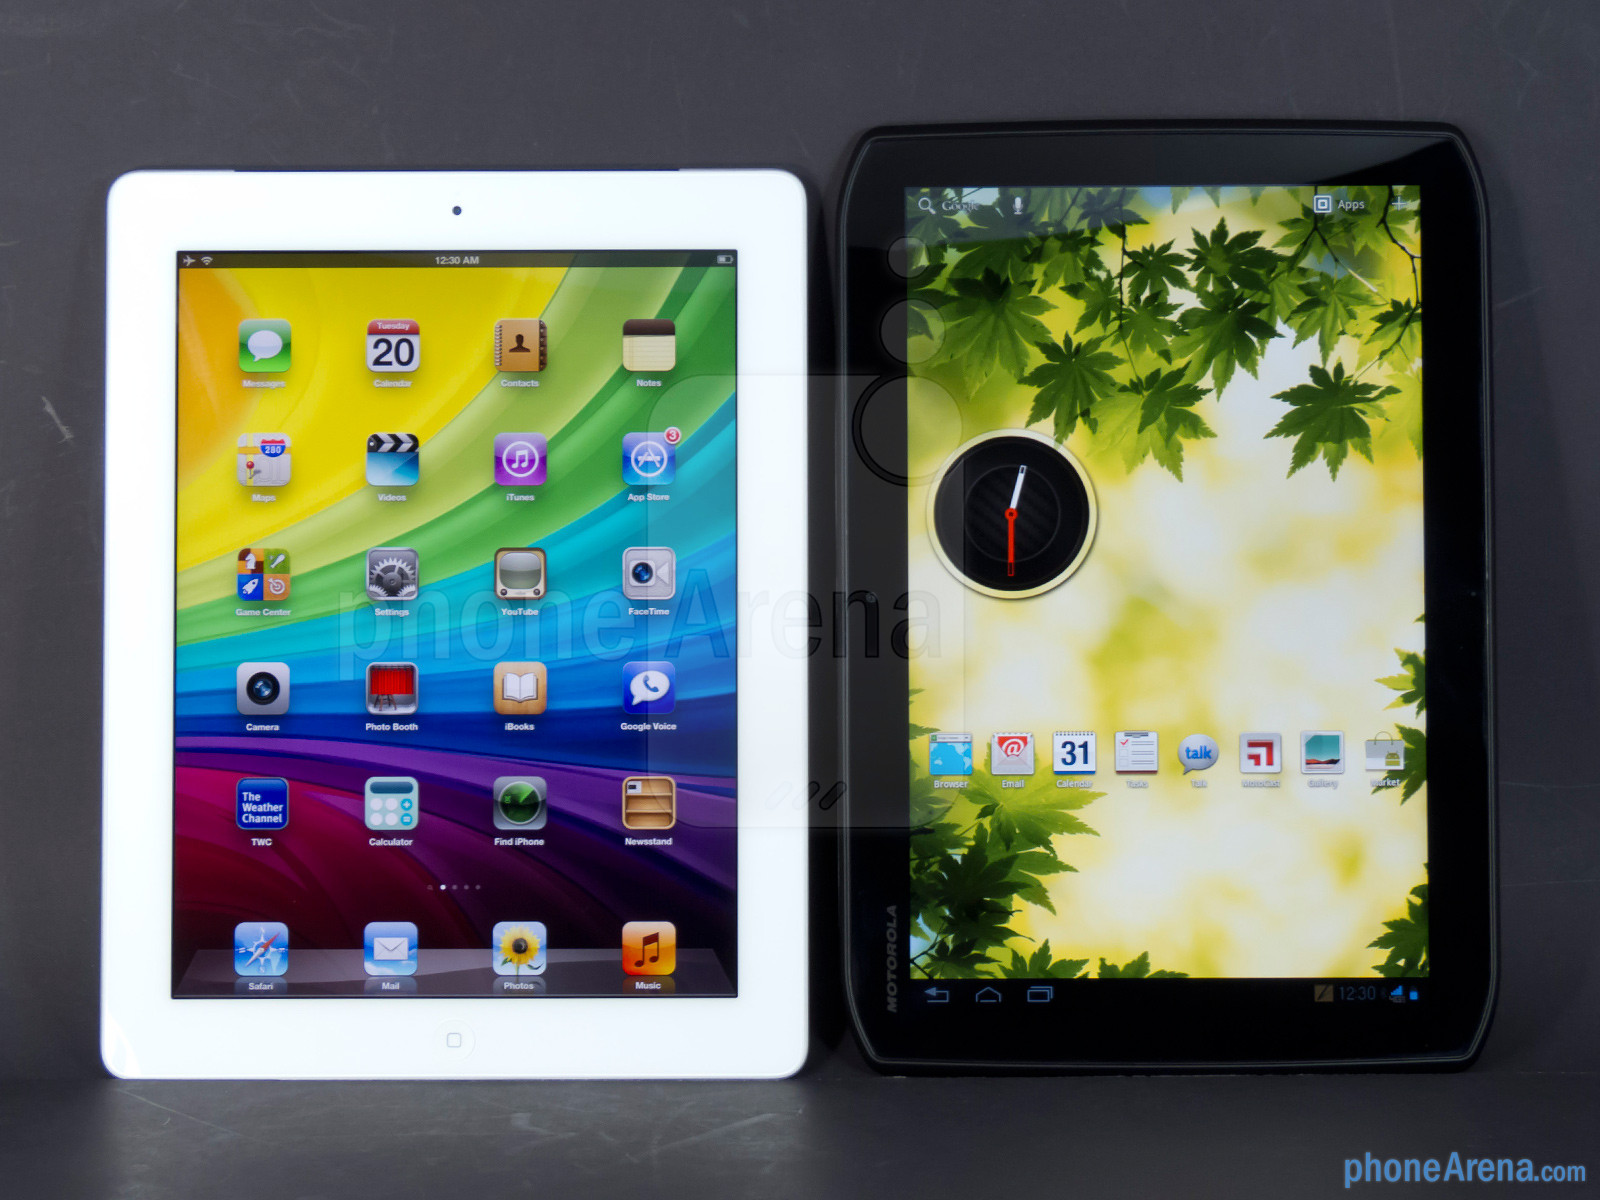 Apple iPad 3 vs. Motorola Droid Xyboard 10.1